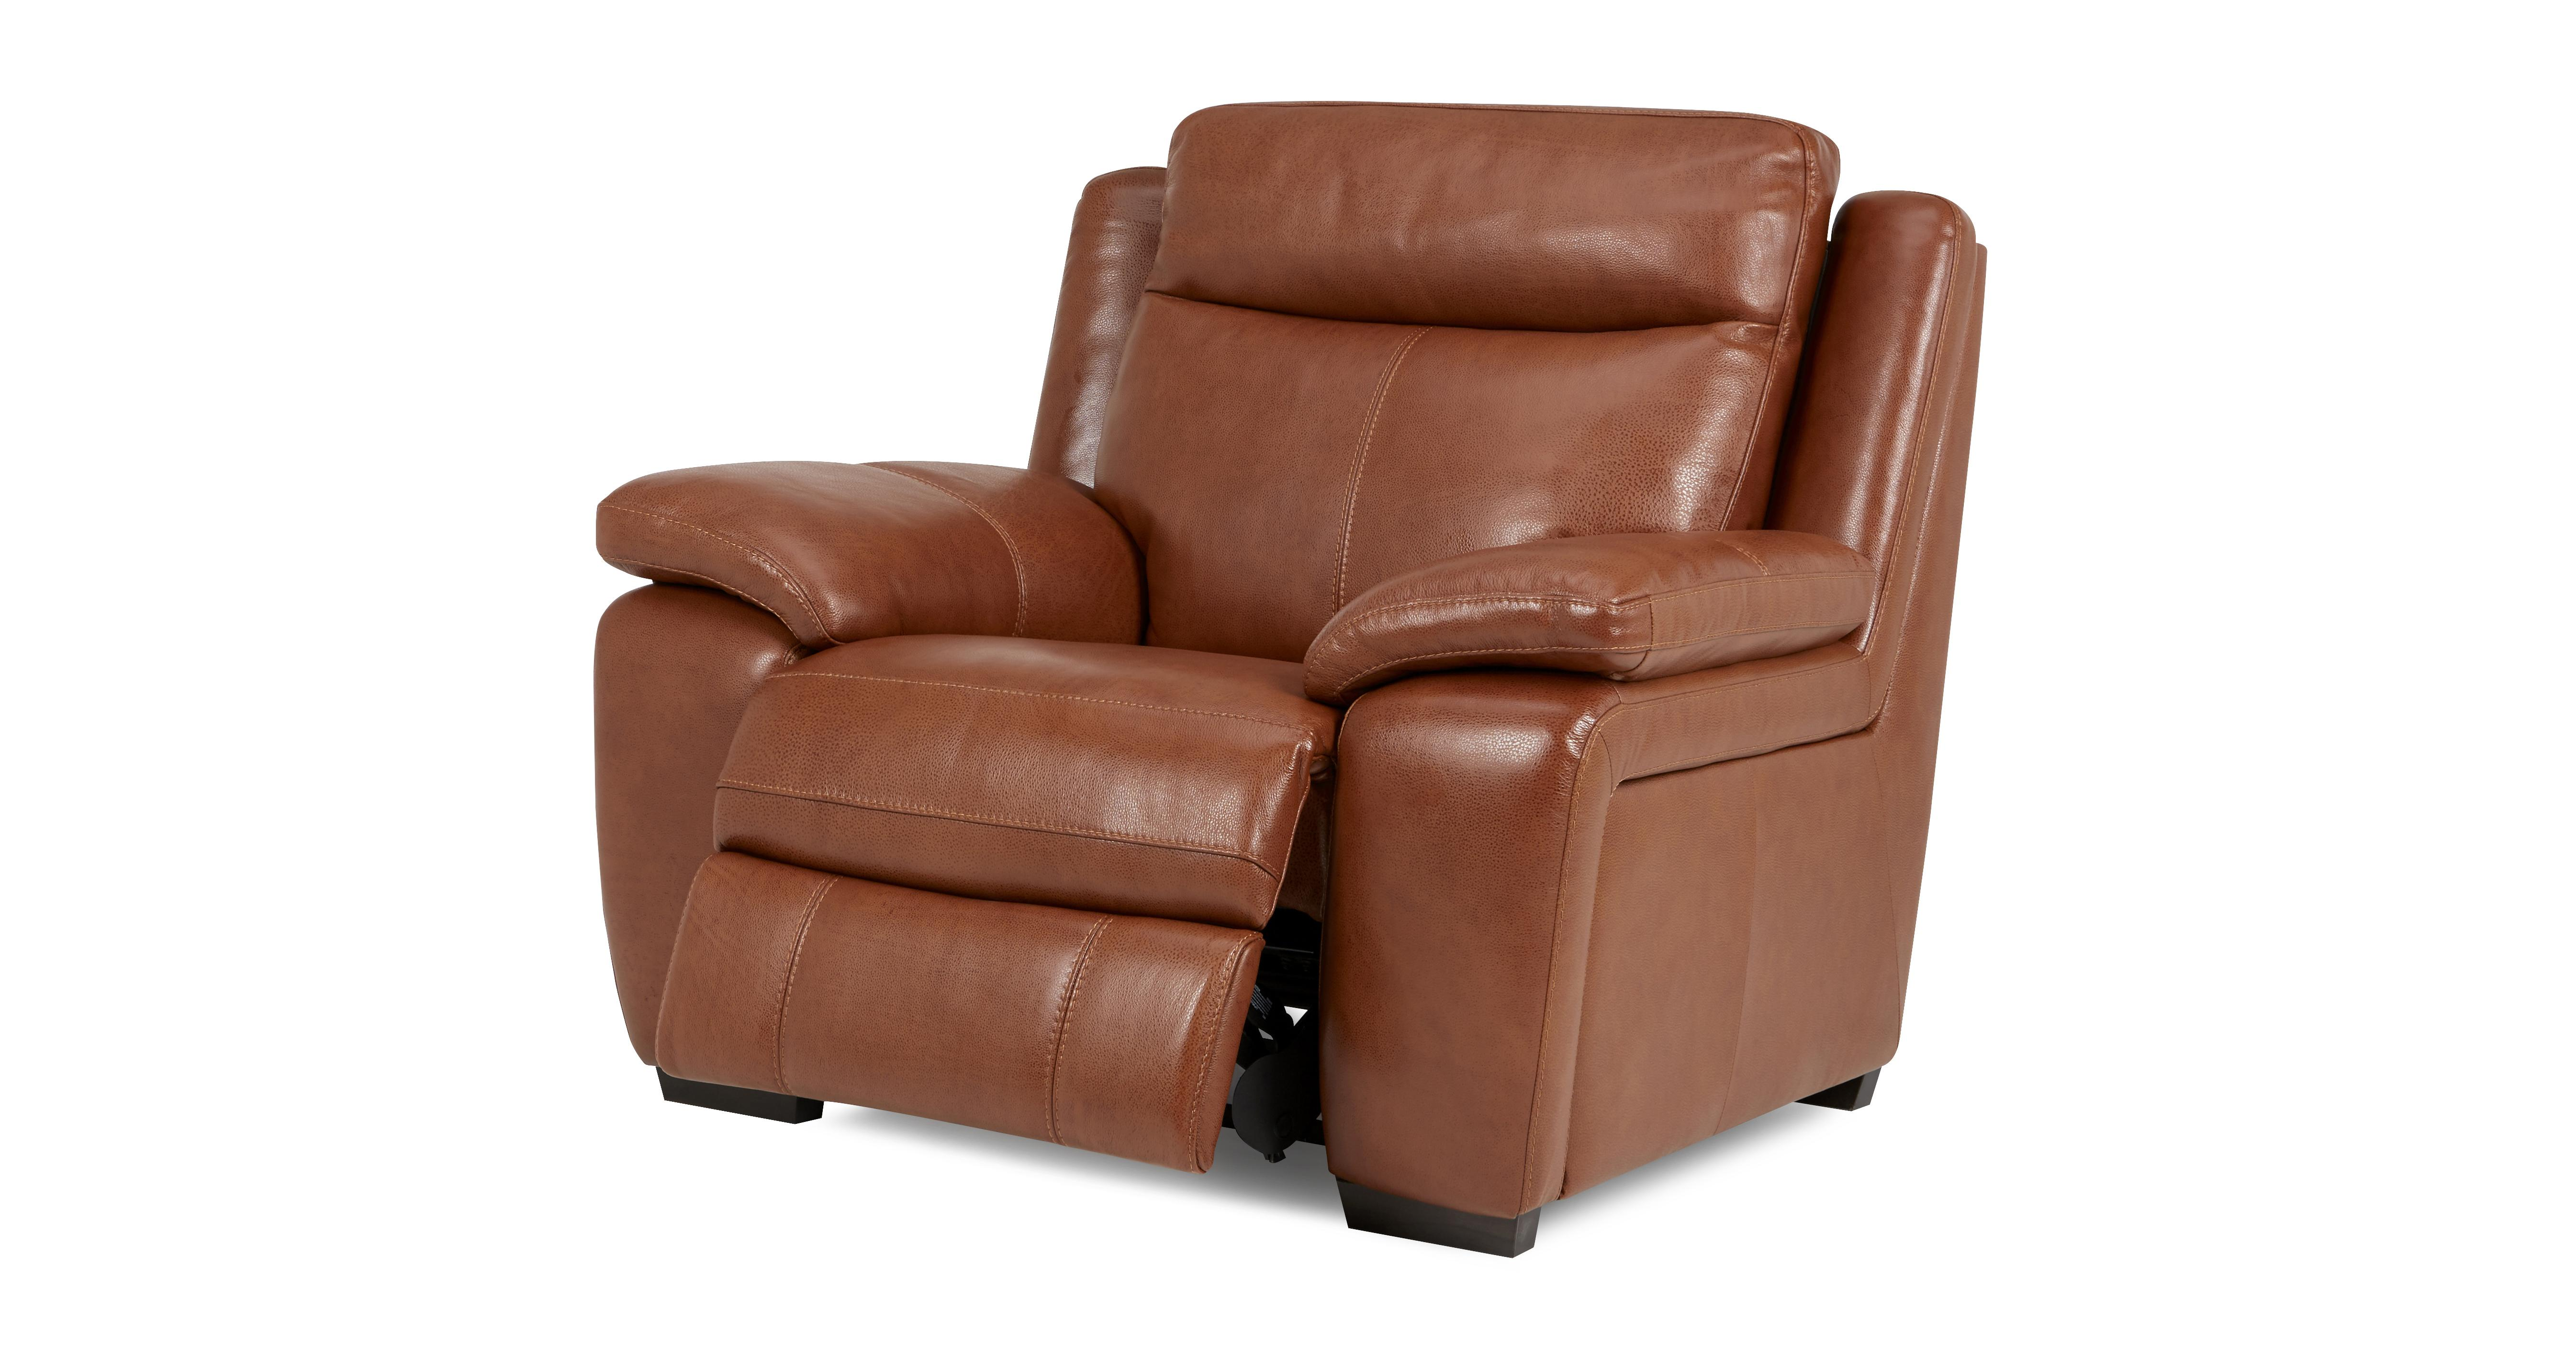 Octavious Leather and Leather Look Electric Recliner Chair Brazil with Leather Look Fabric | DFS  sc 1 st  DFS & Octavious Leather and Leather Look Electric Recliner Chair Brazil ... islam-shia.org